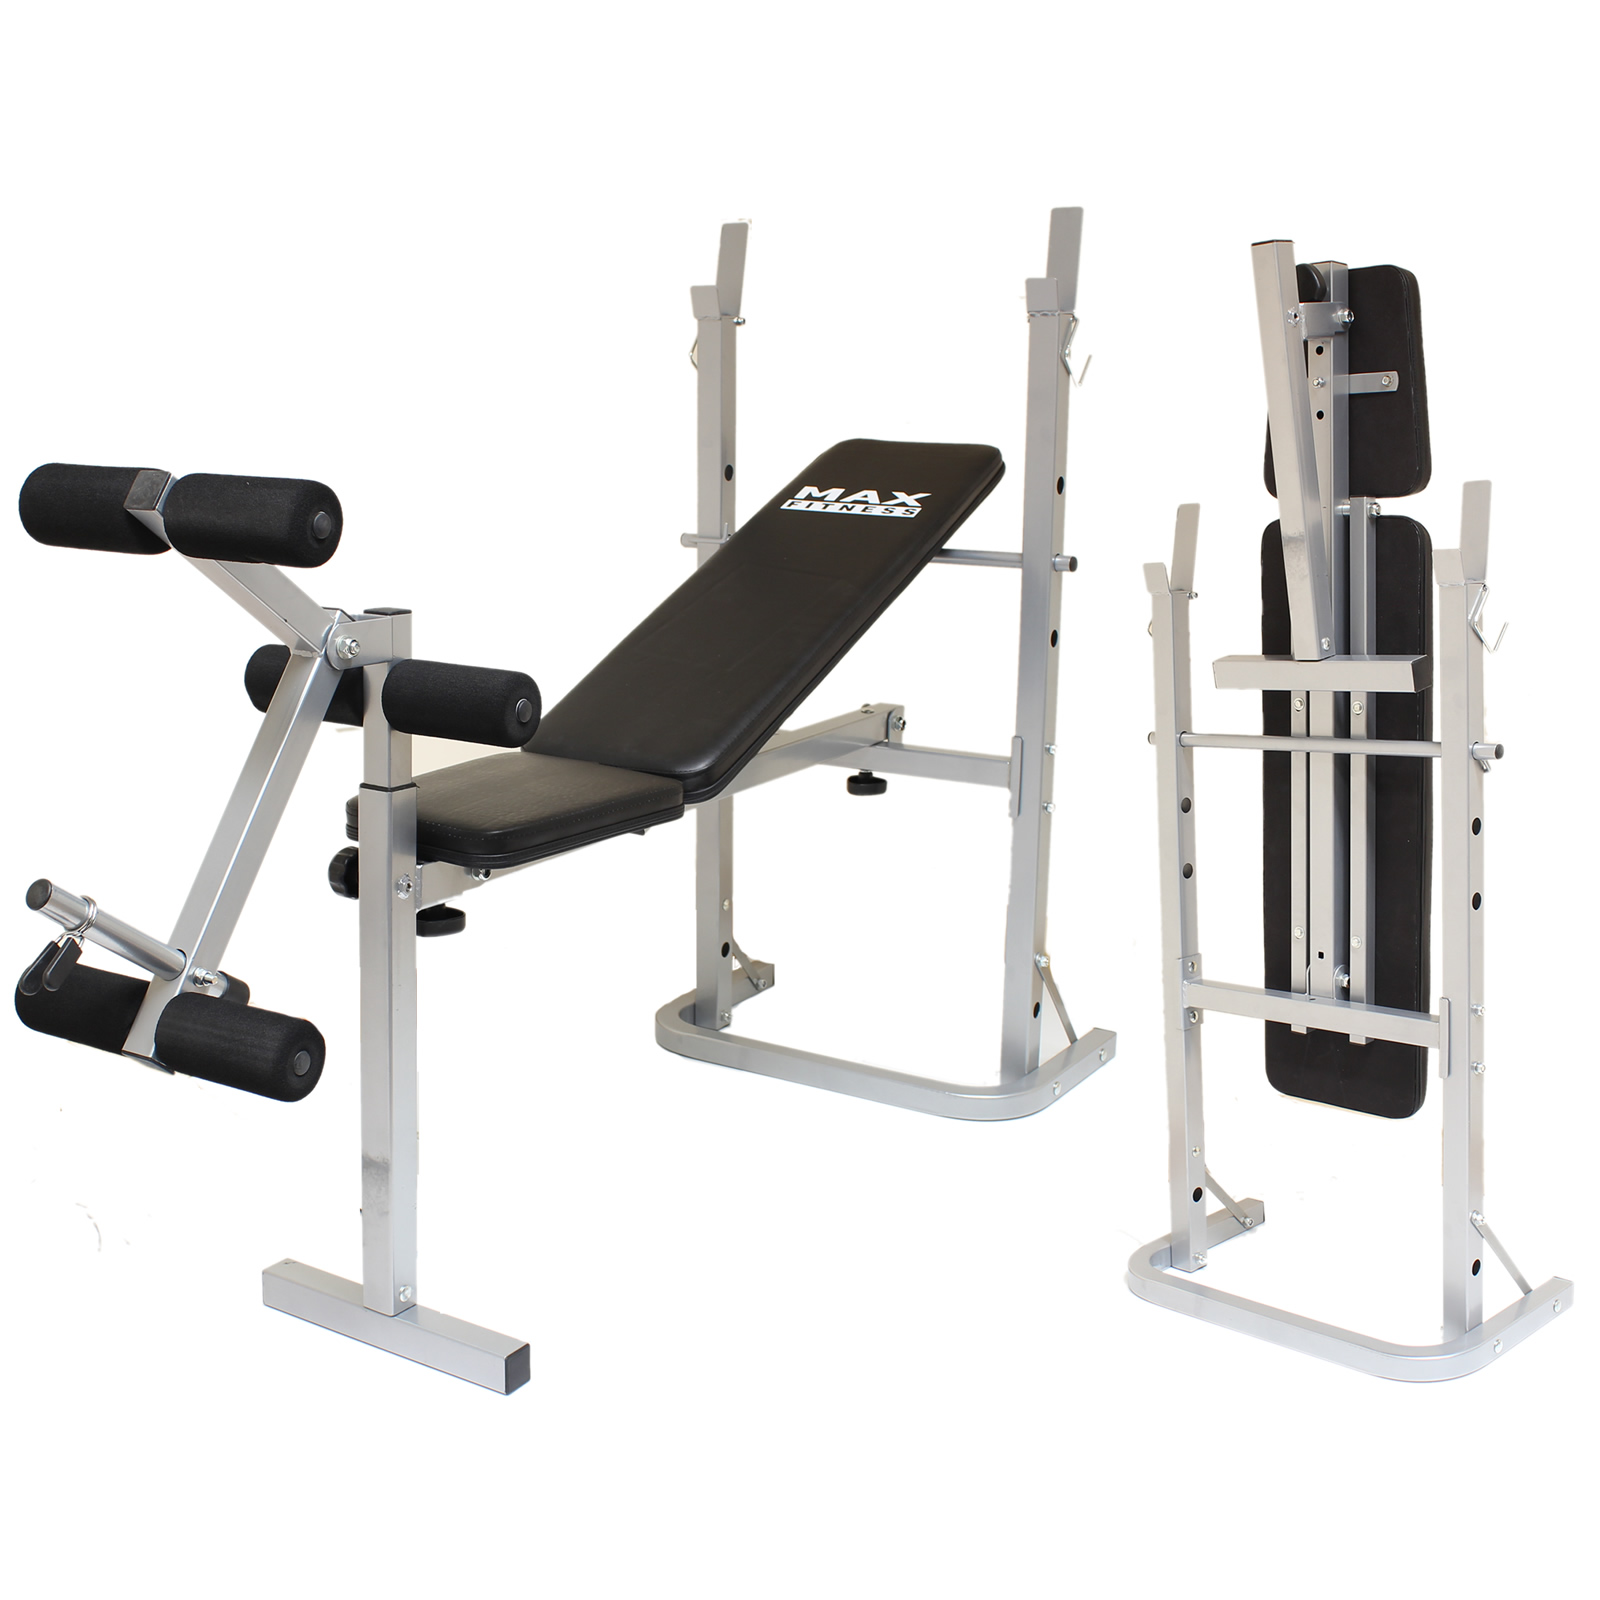 Max fitness folding weight bench home gym exercise lift lifting chest press ab ebay Weight bench and weights